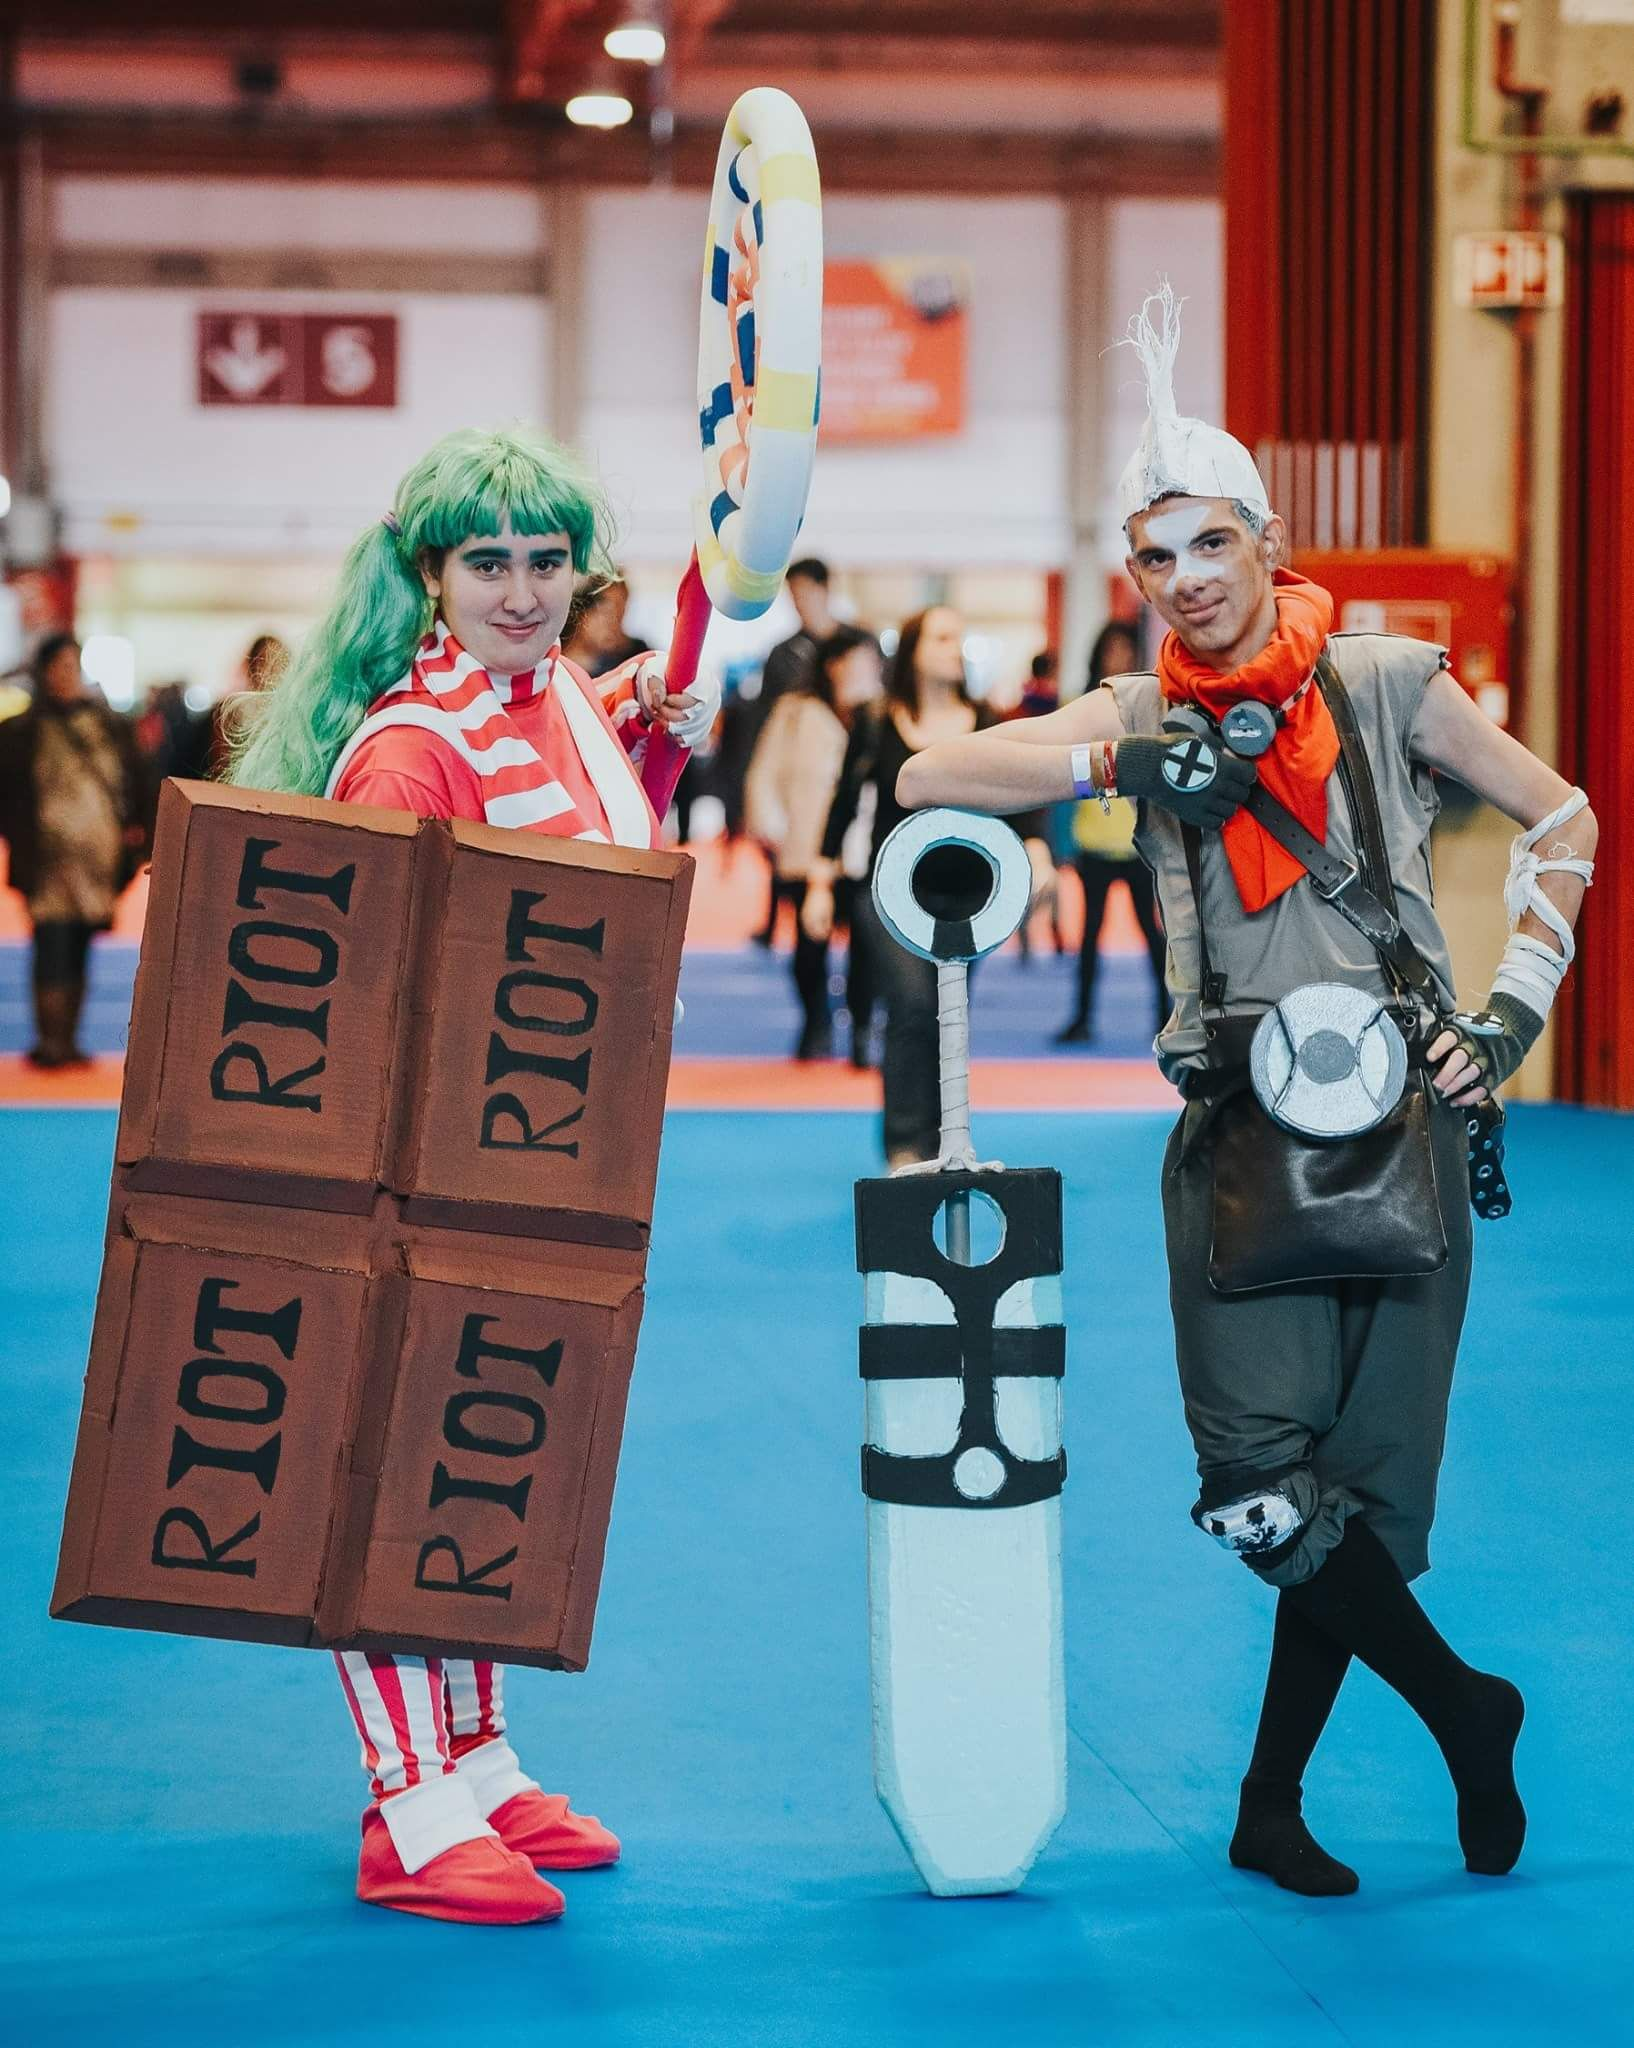 Ekko And Lollipoppy League Of Legends Comiccon Comic Con League Of Legends Cosplay